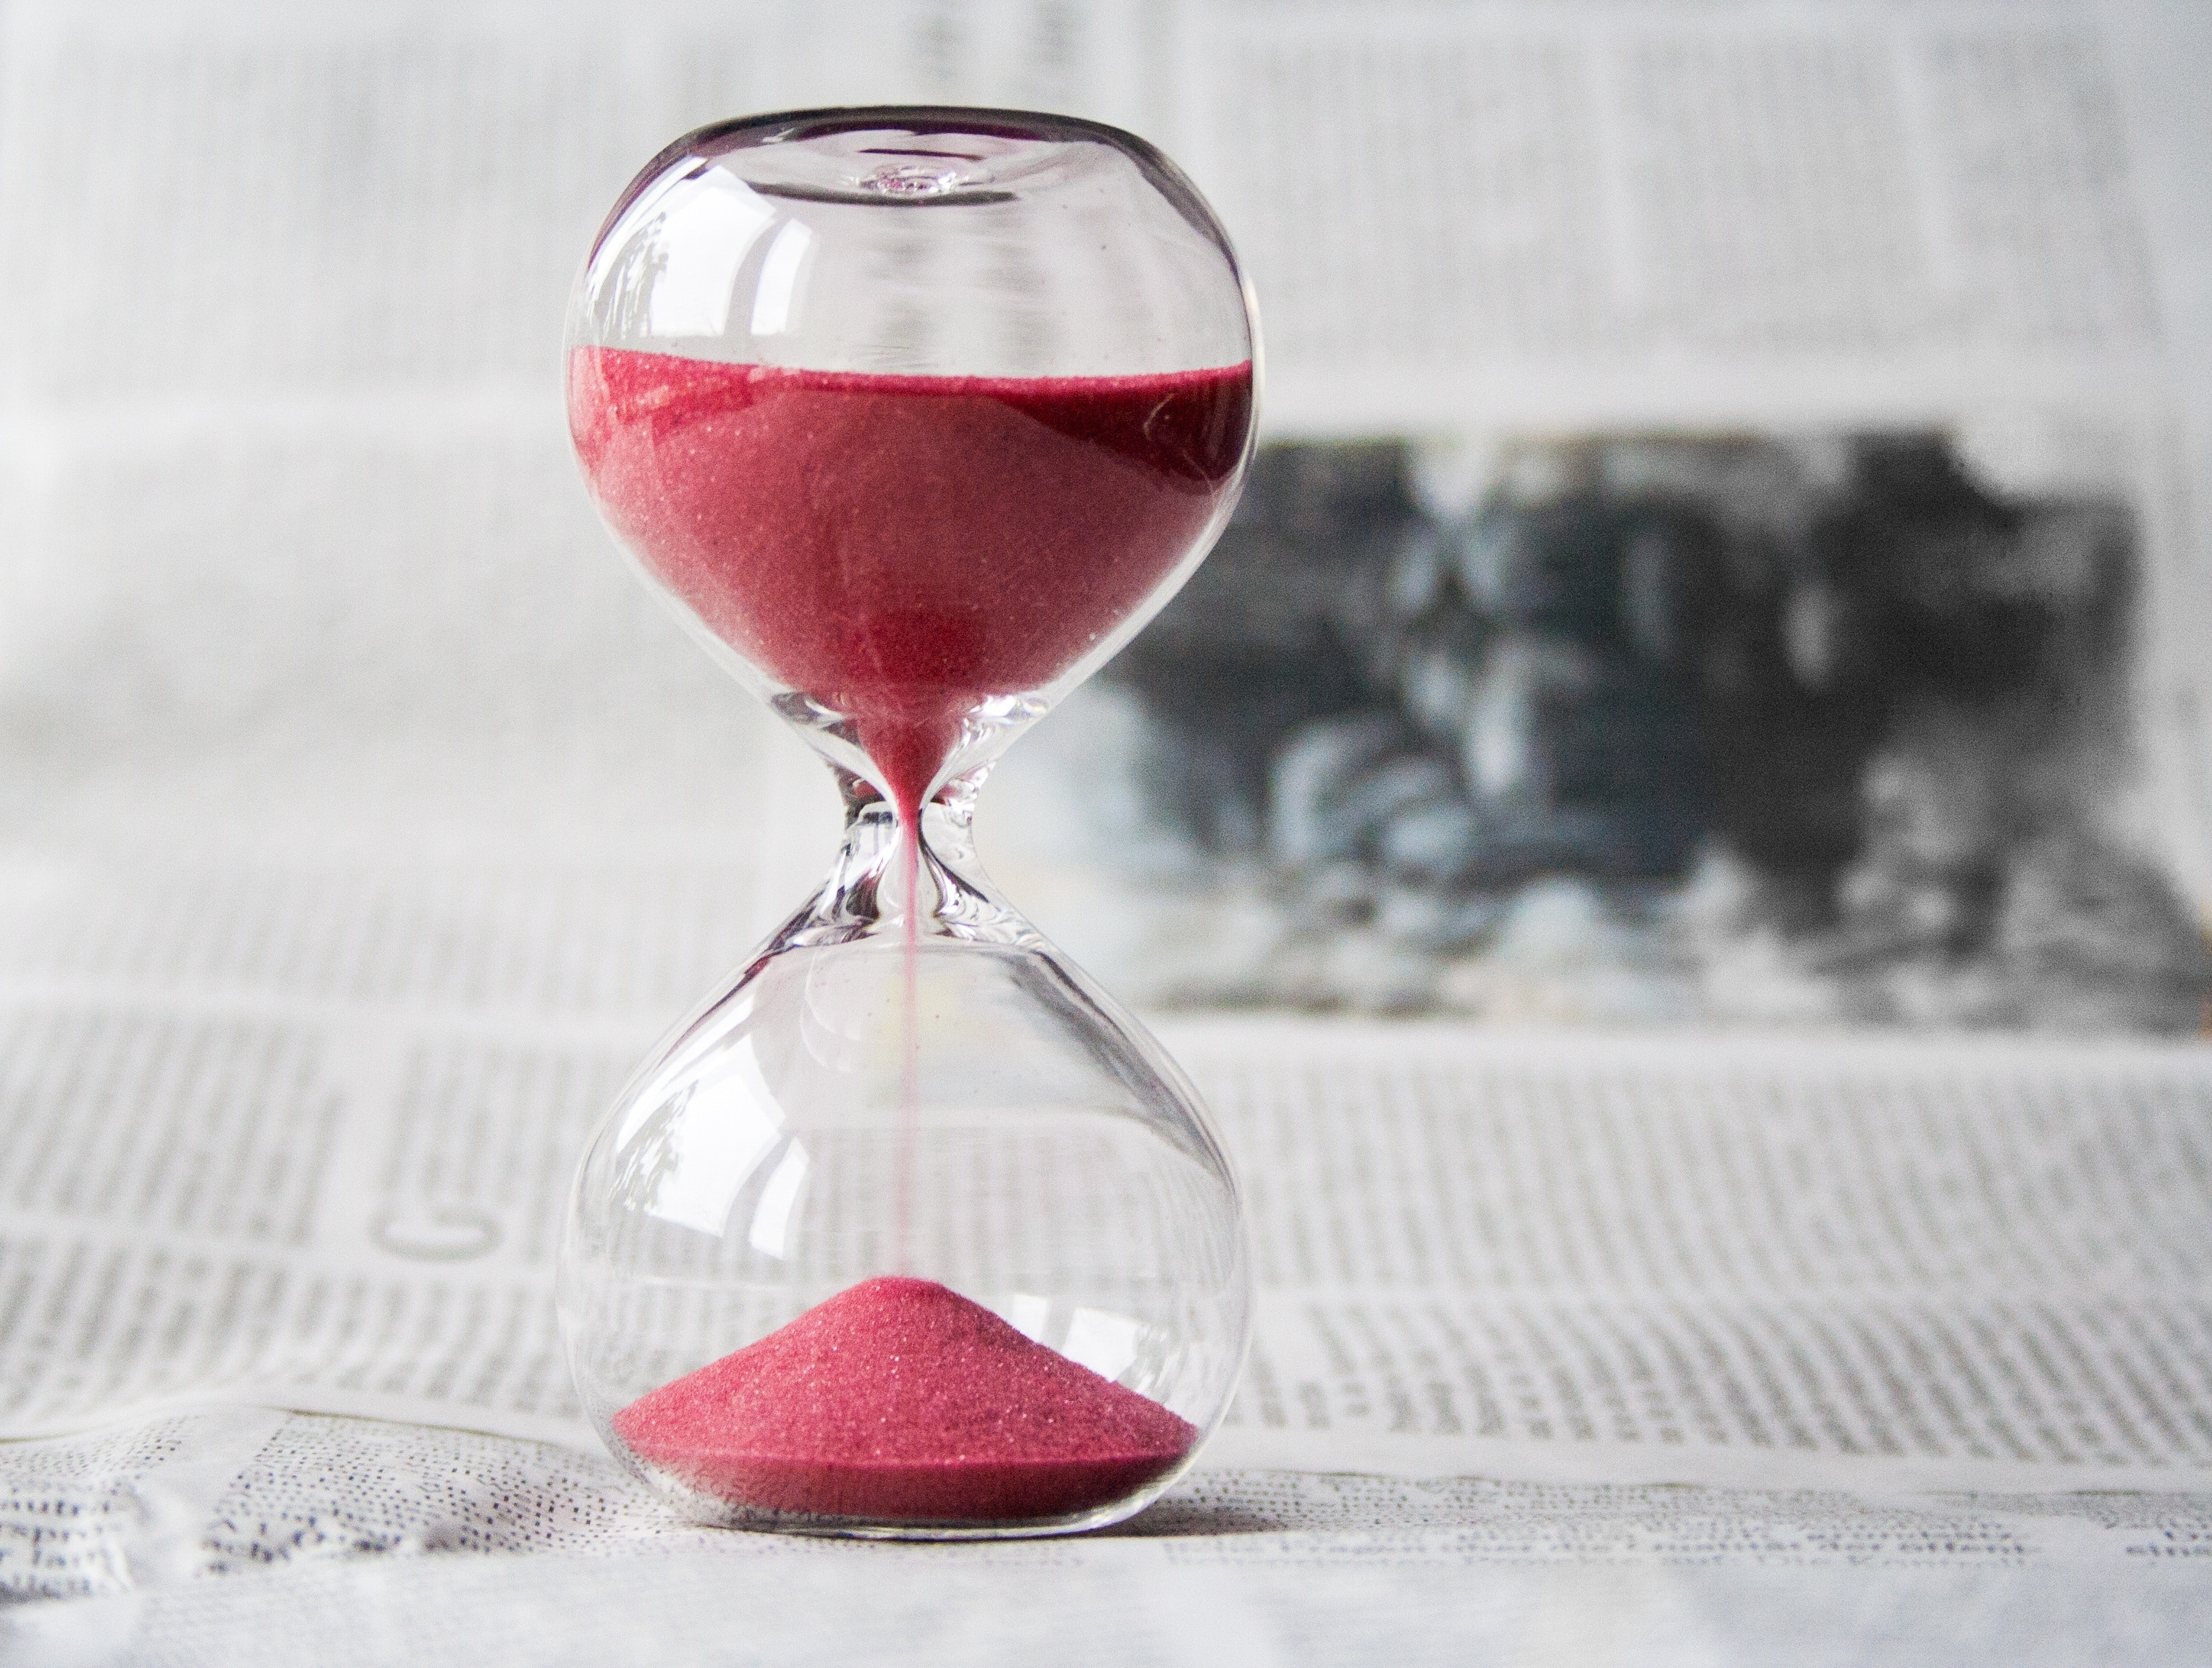 Gain control of your life with Time Management